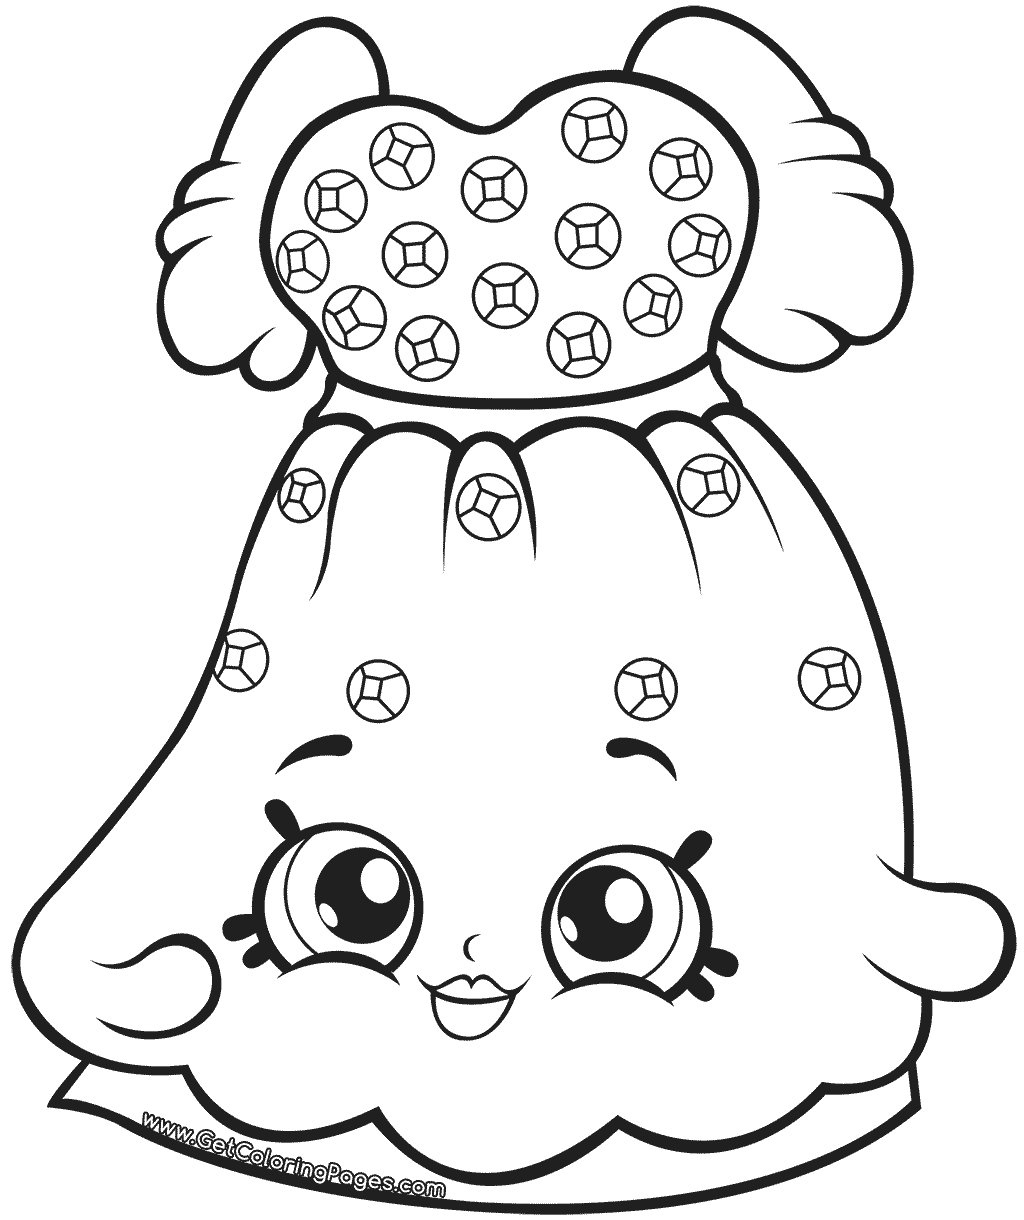 Shopkins Limited Edition Coloring Pages At Getcolorings